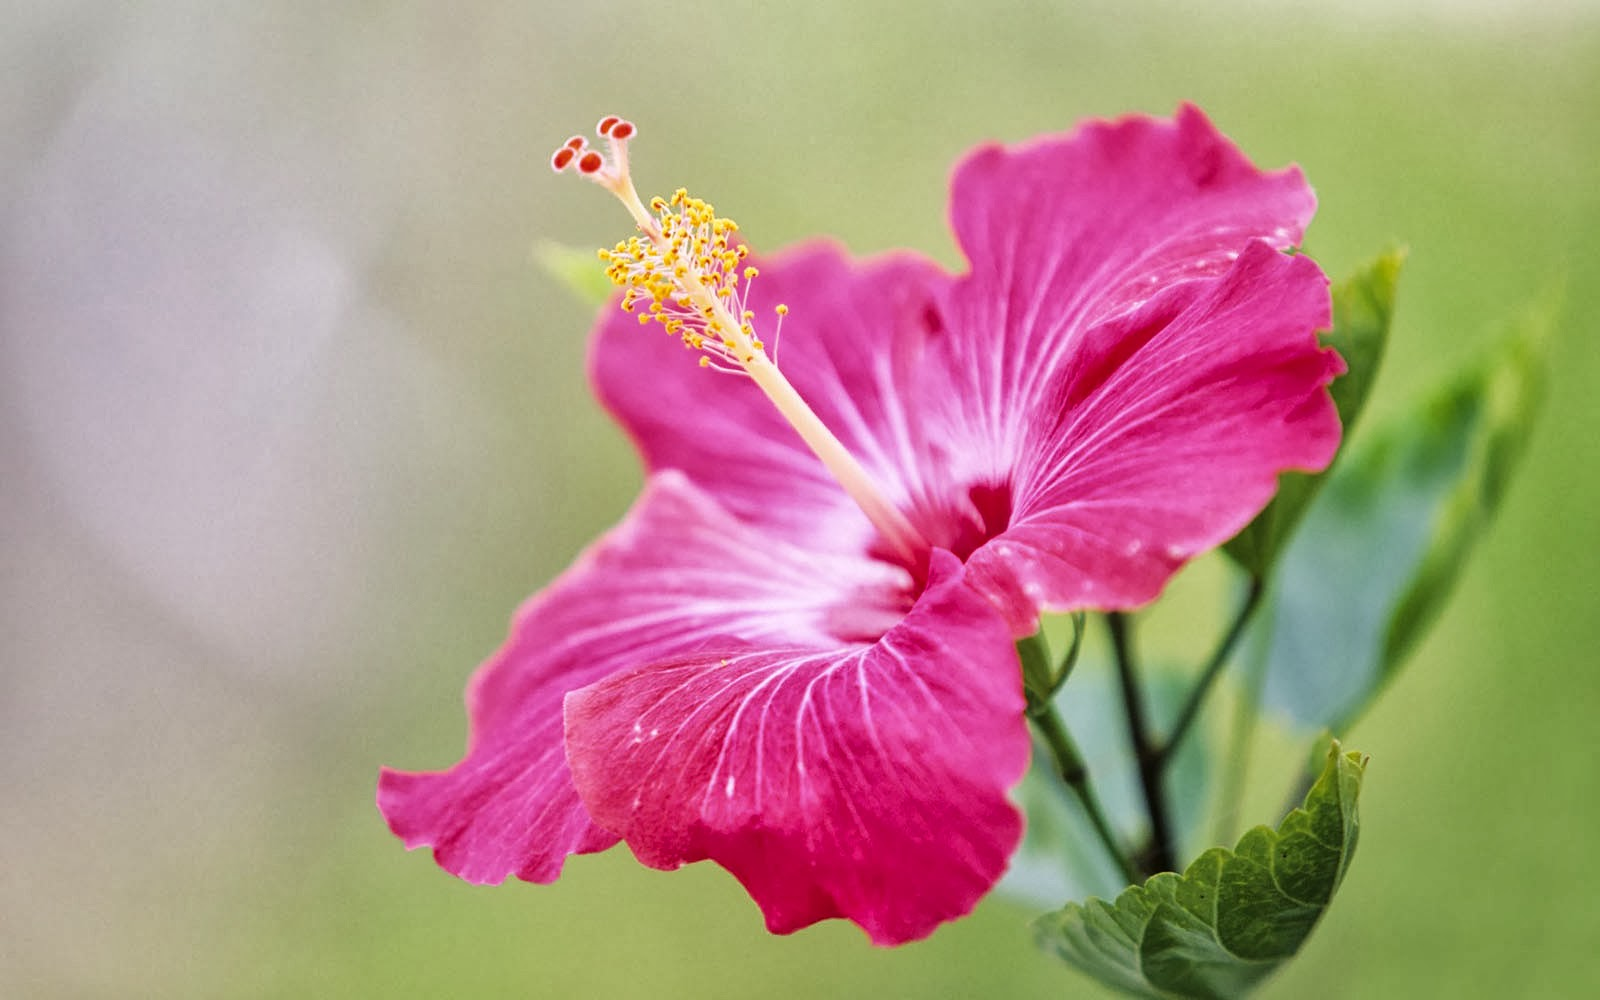 Tag Pink Hibiscus Flower Wallpapers Backgrounds PhotosImages and 1600x1000